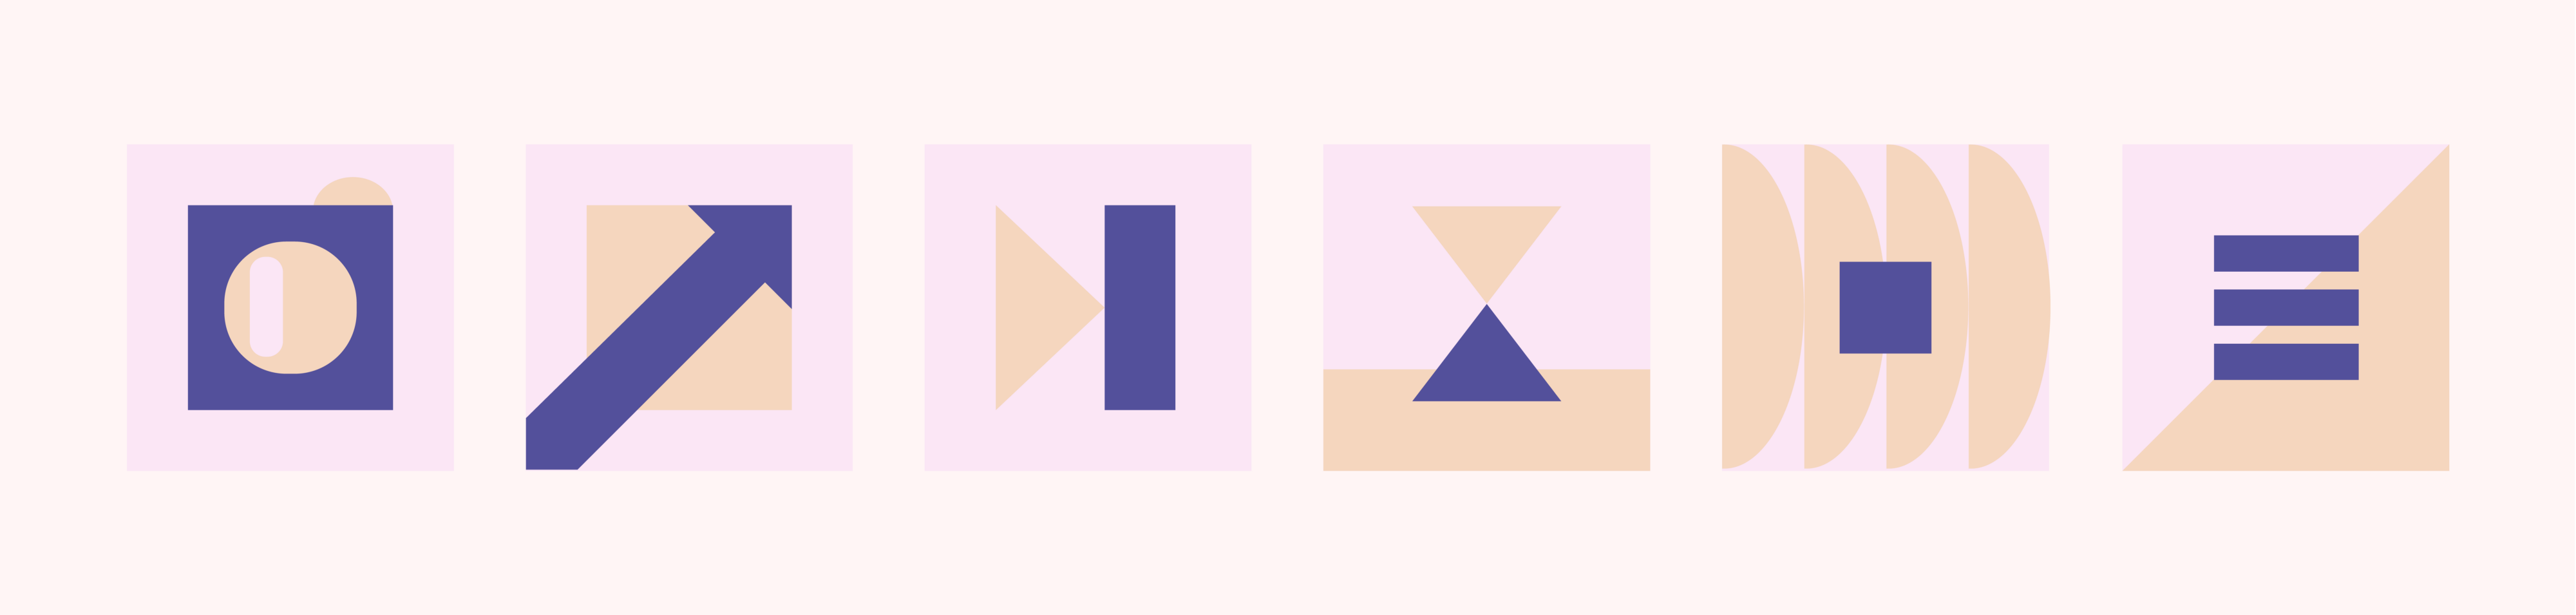 6 boxes with geometric shapes that abstractly represent the concepts below, e.g. a square within a square for tv